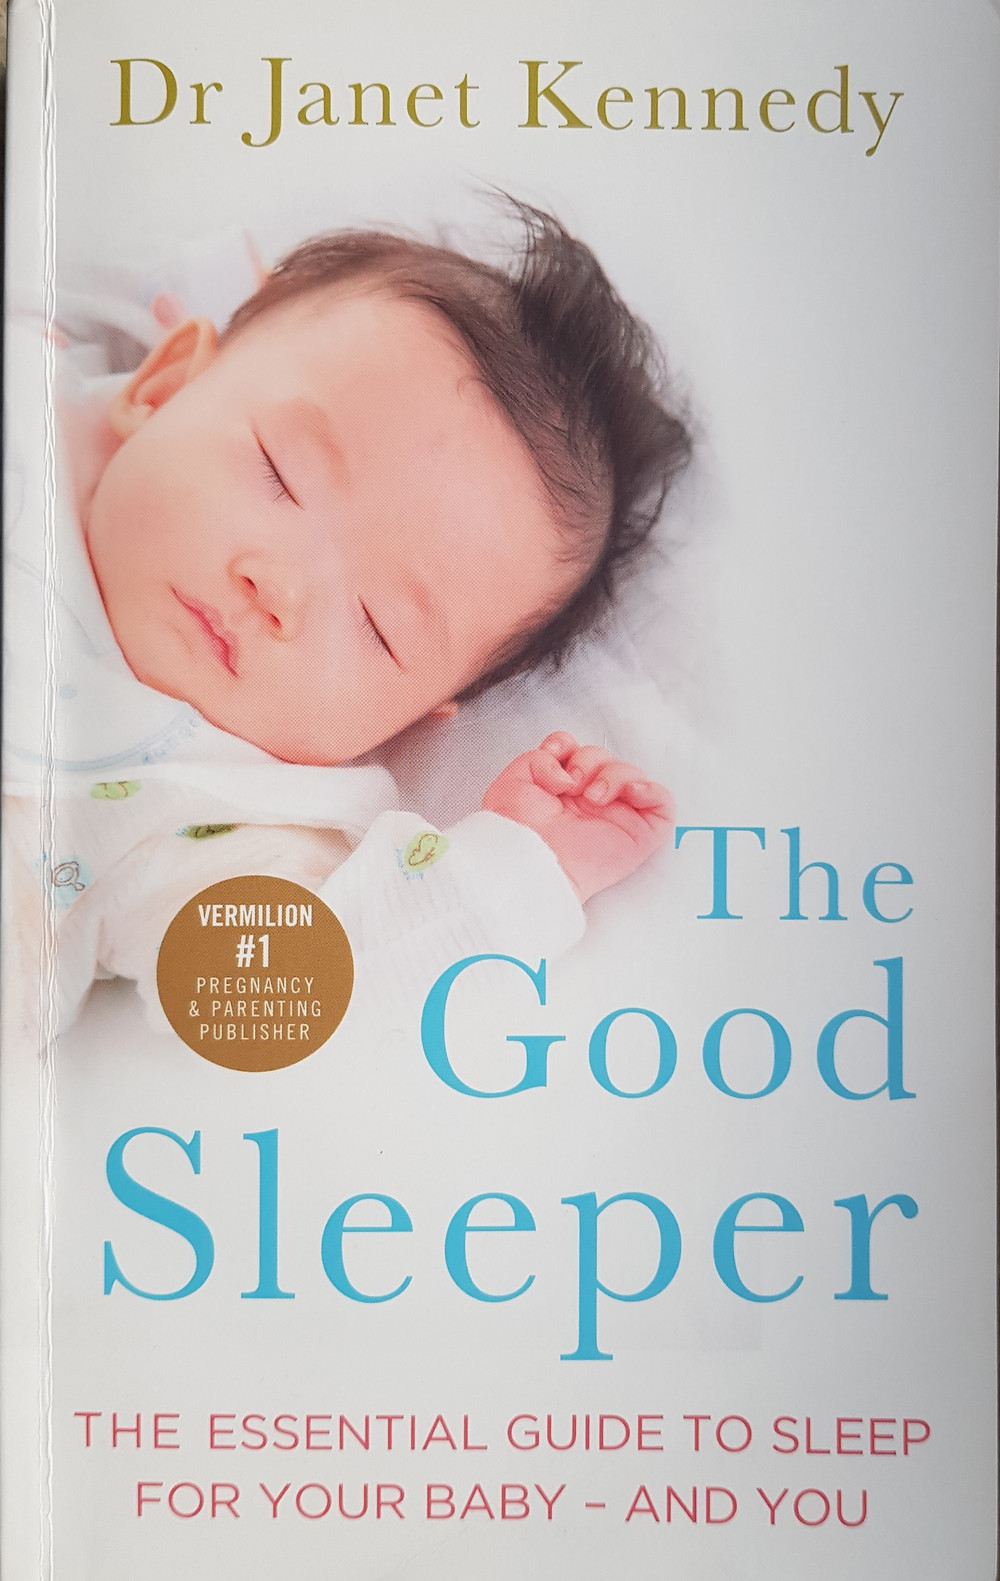 The Good Sleeper